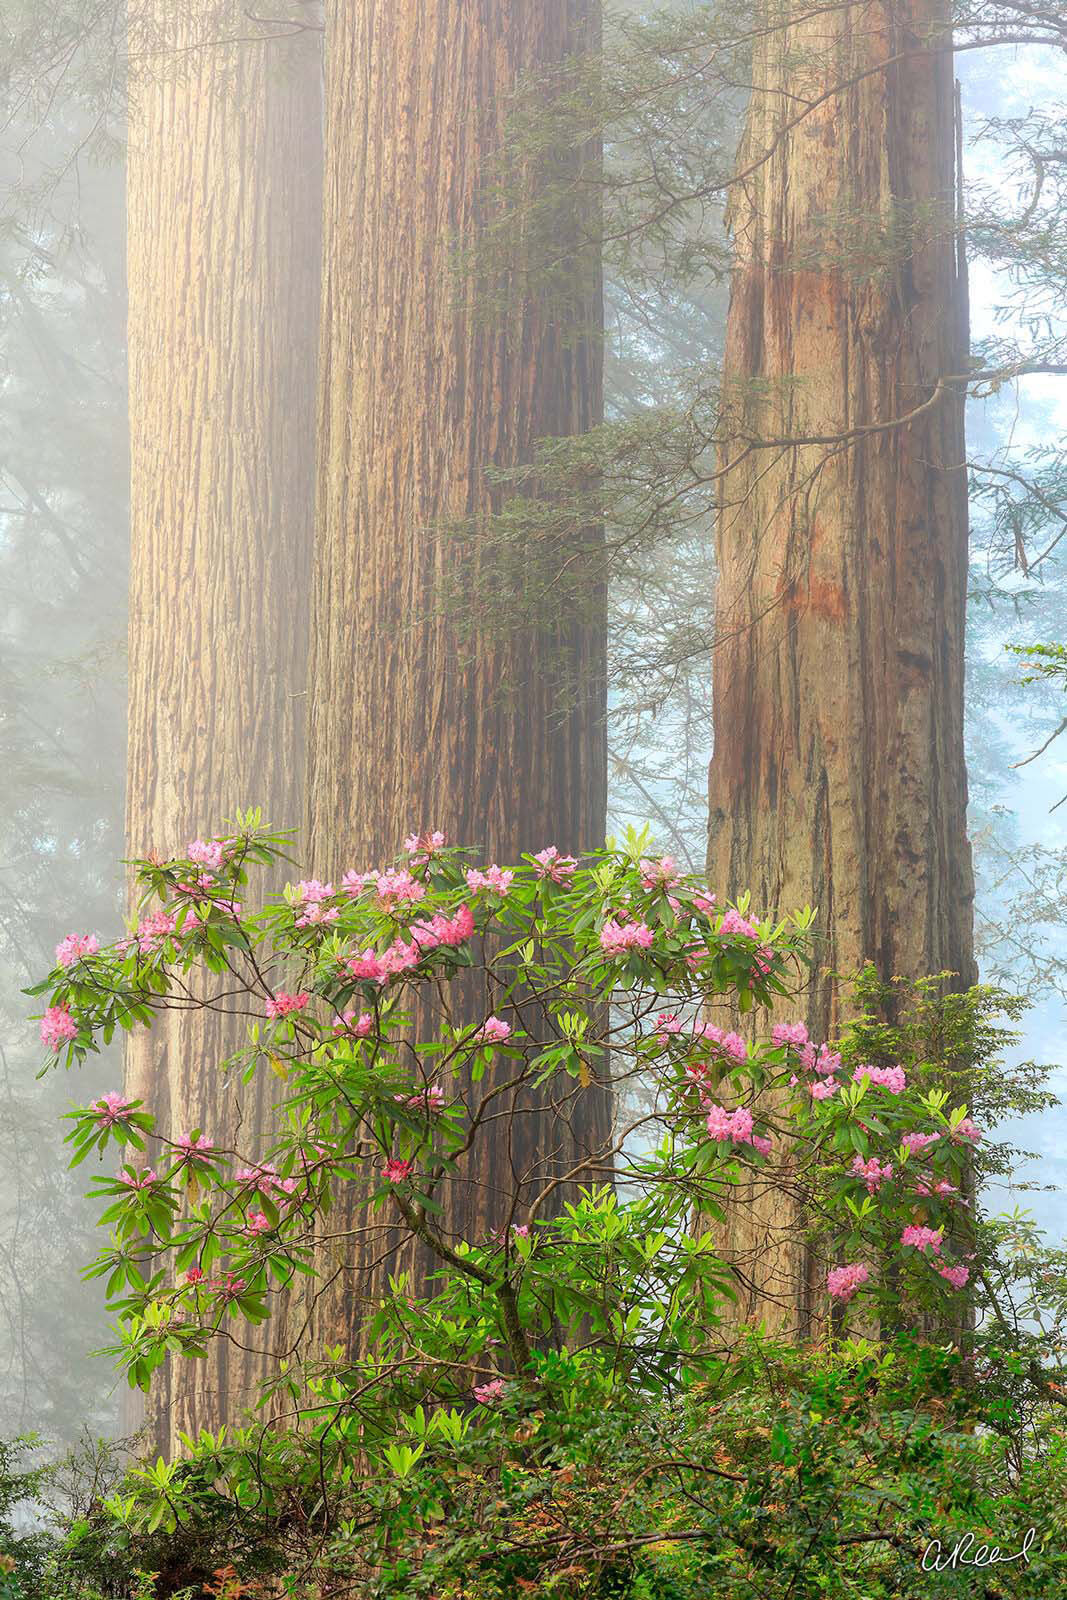 A vertical photograph of redwood trees in the fog with hydrangea flowers growing in front of them.